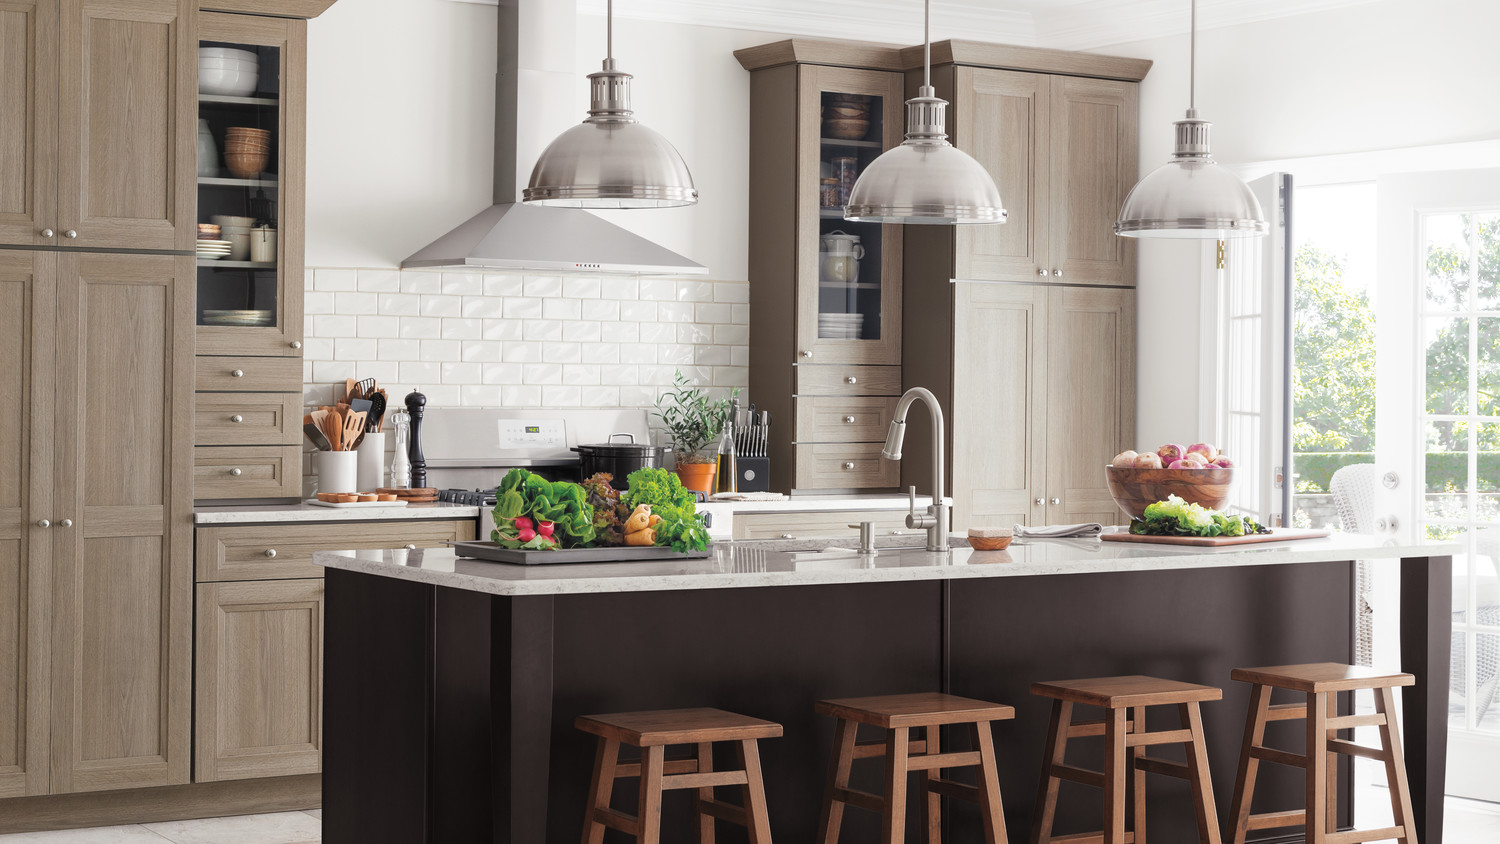 Video martha stewart shares her kitchen design for Kitchen remodel inspiration